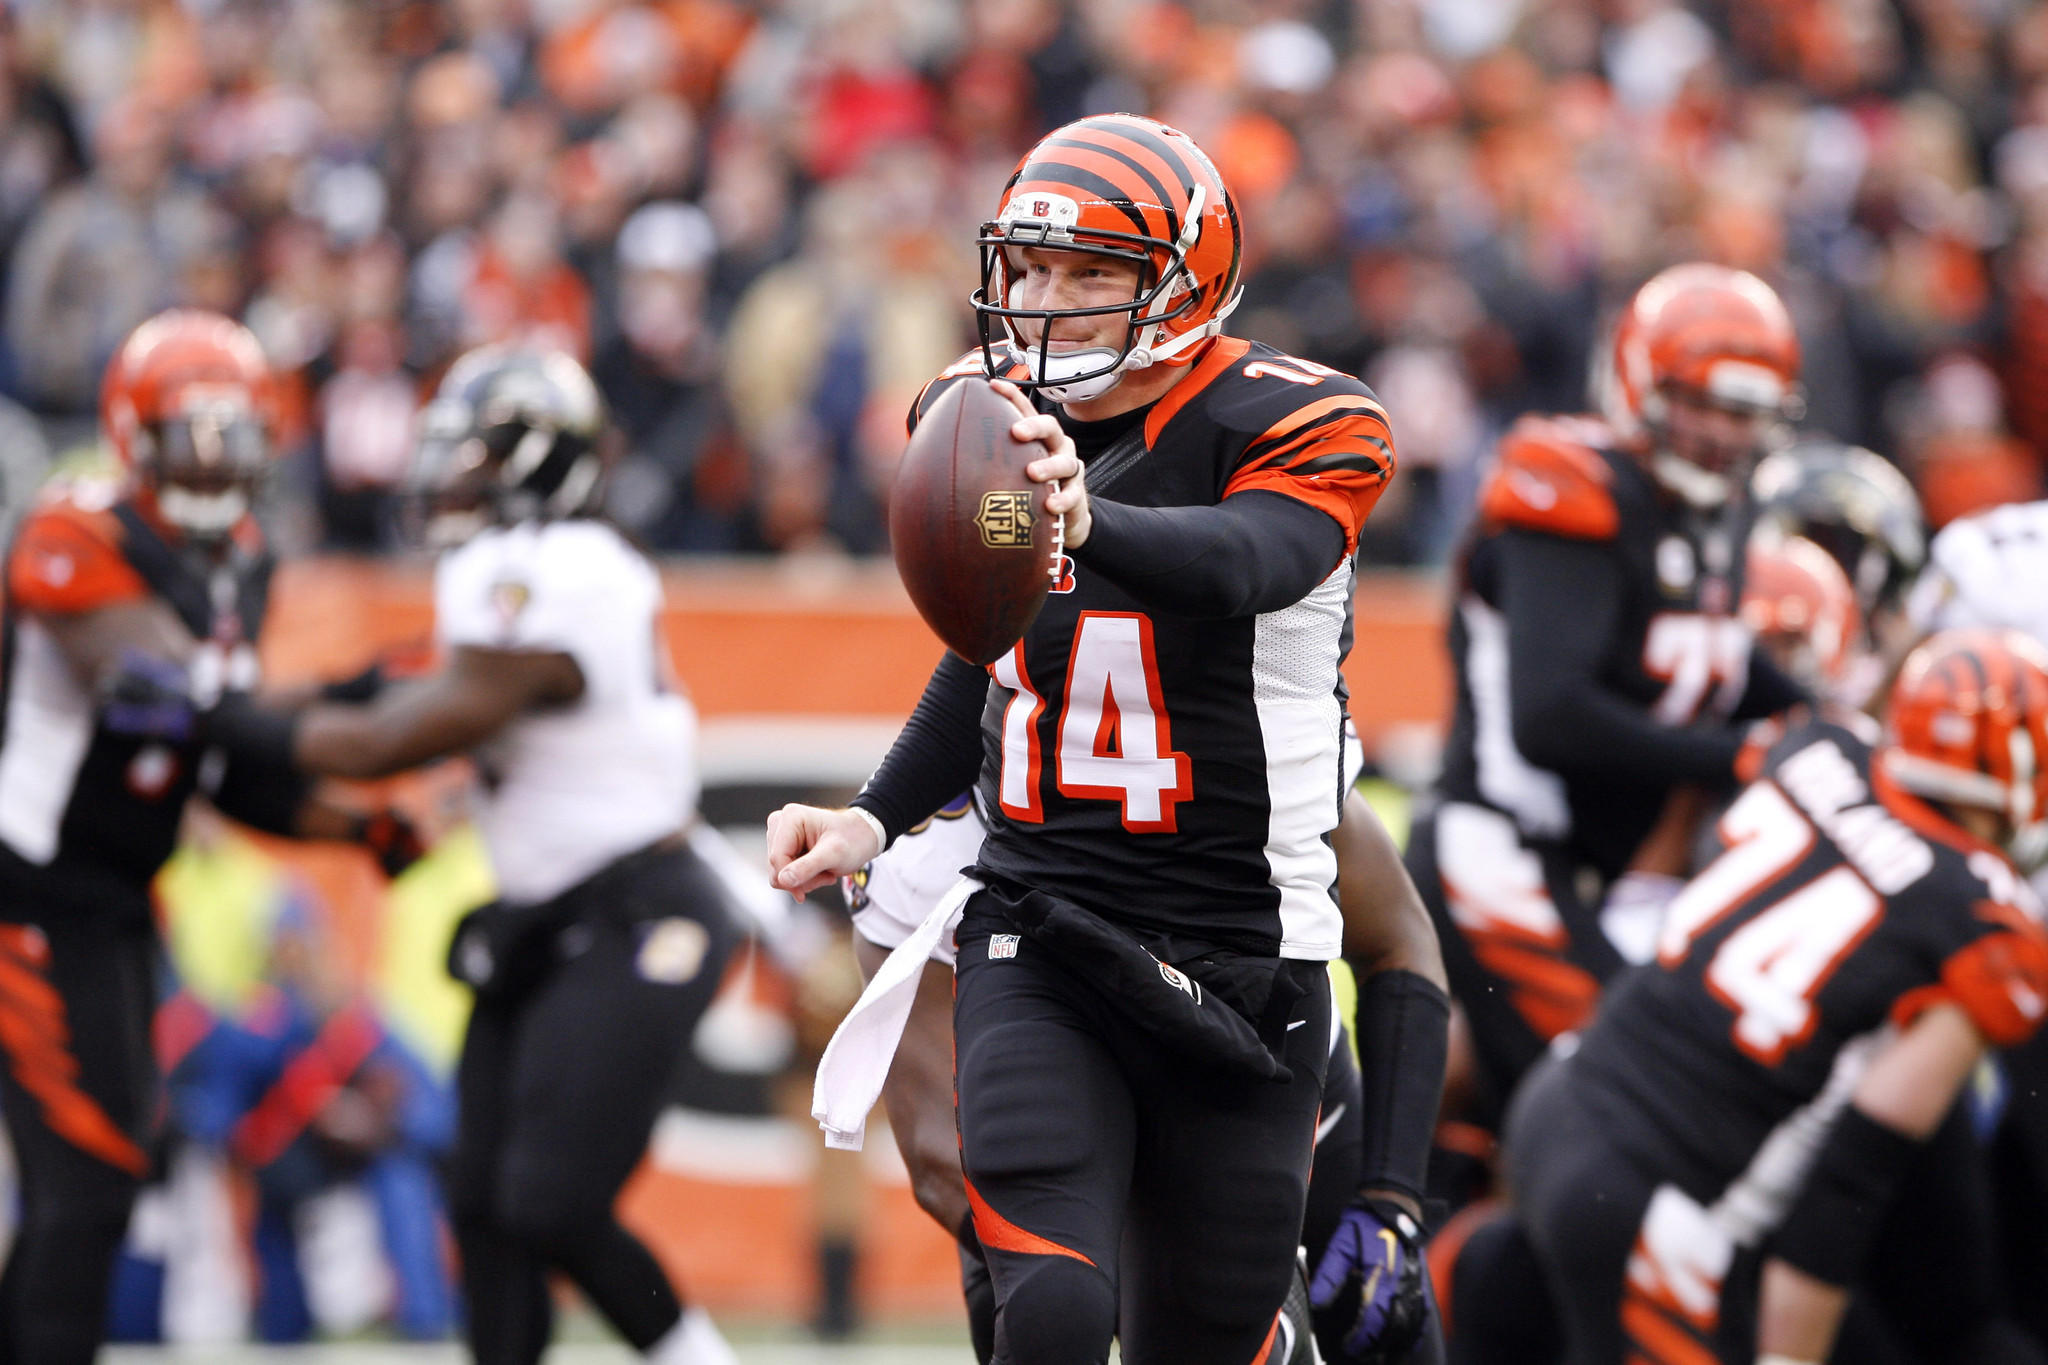 Cincinnati Bengals quarterback Andy Dalton (14) runs the ball for a touchdown against the Baltimore Ravens in the fourth quarter at Paul Brown Stadium. Cincinnati defeated Baltimore 34-17.